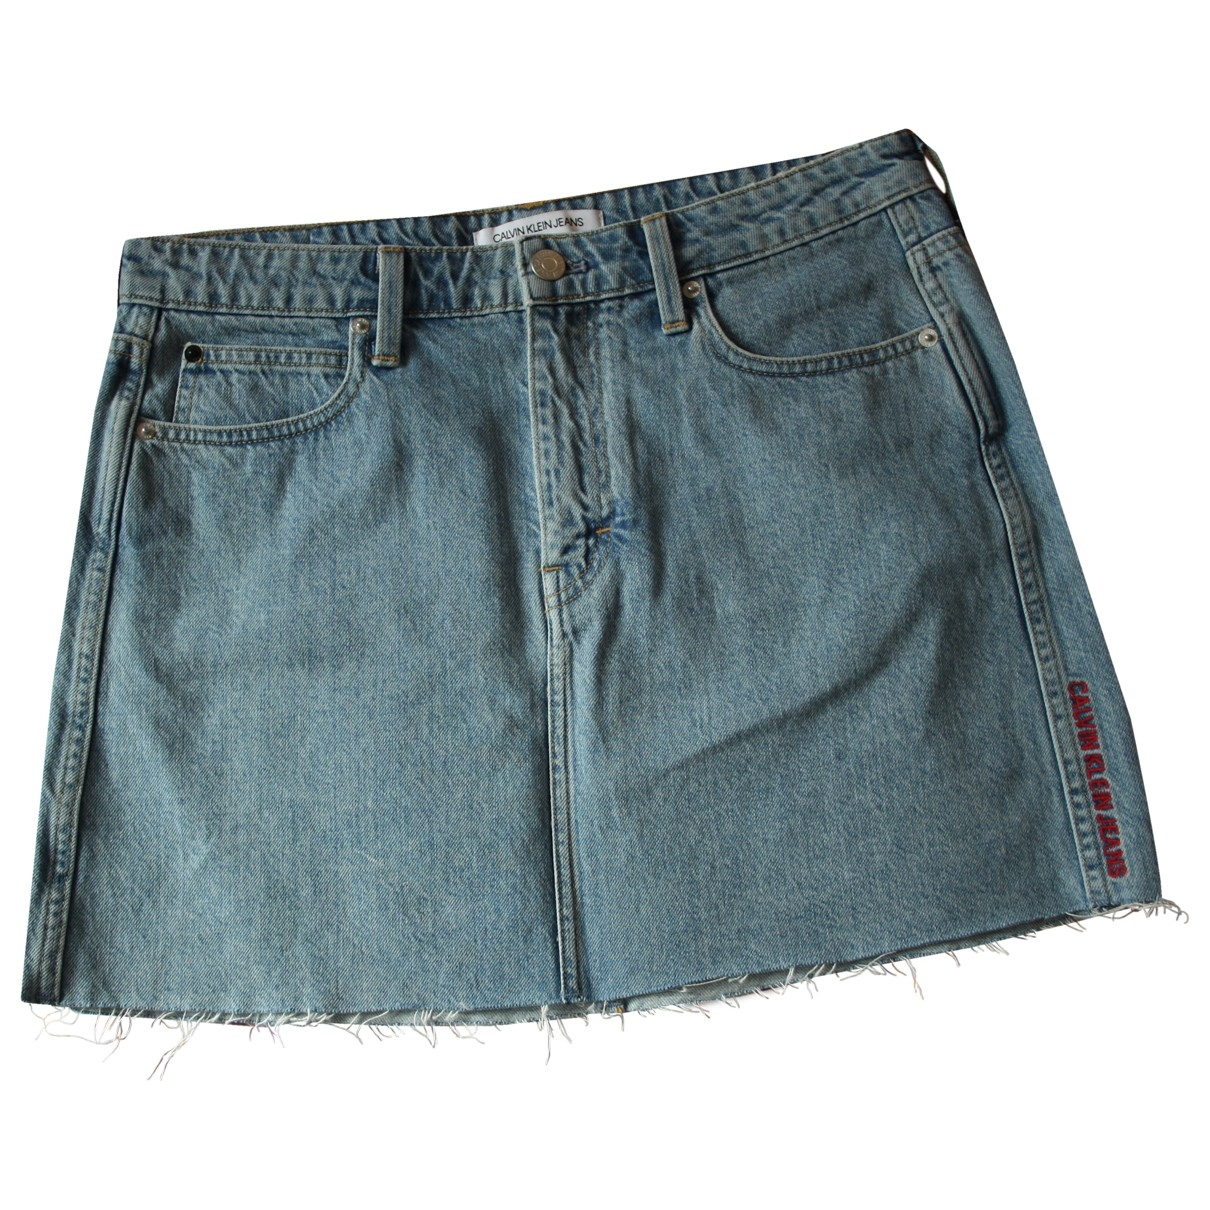 Calvin Klein \N Blue Denim - Jeans skirt for Women 38 FR